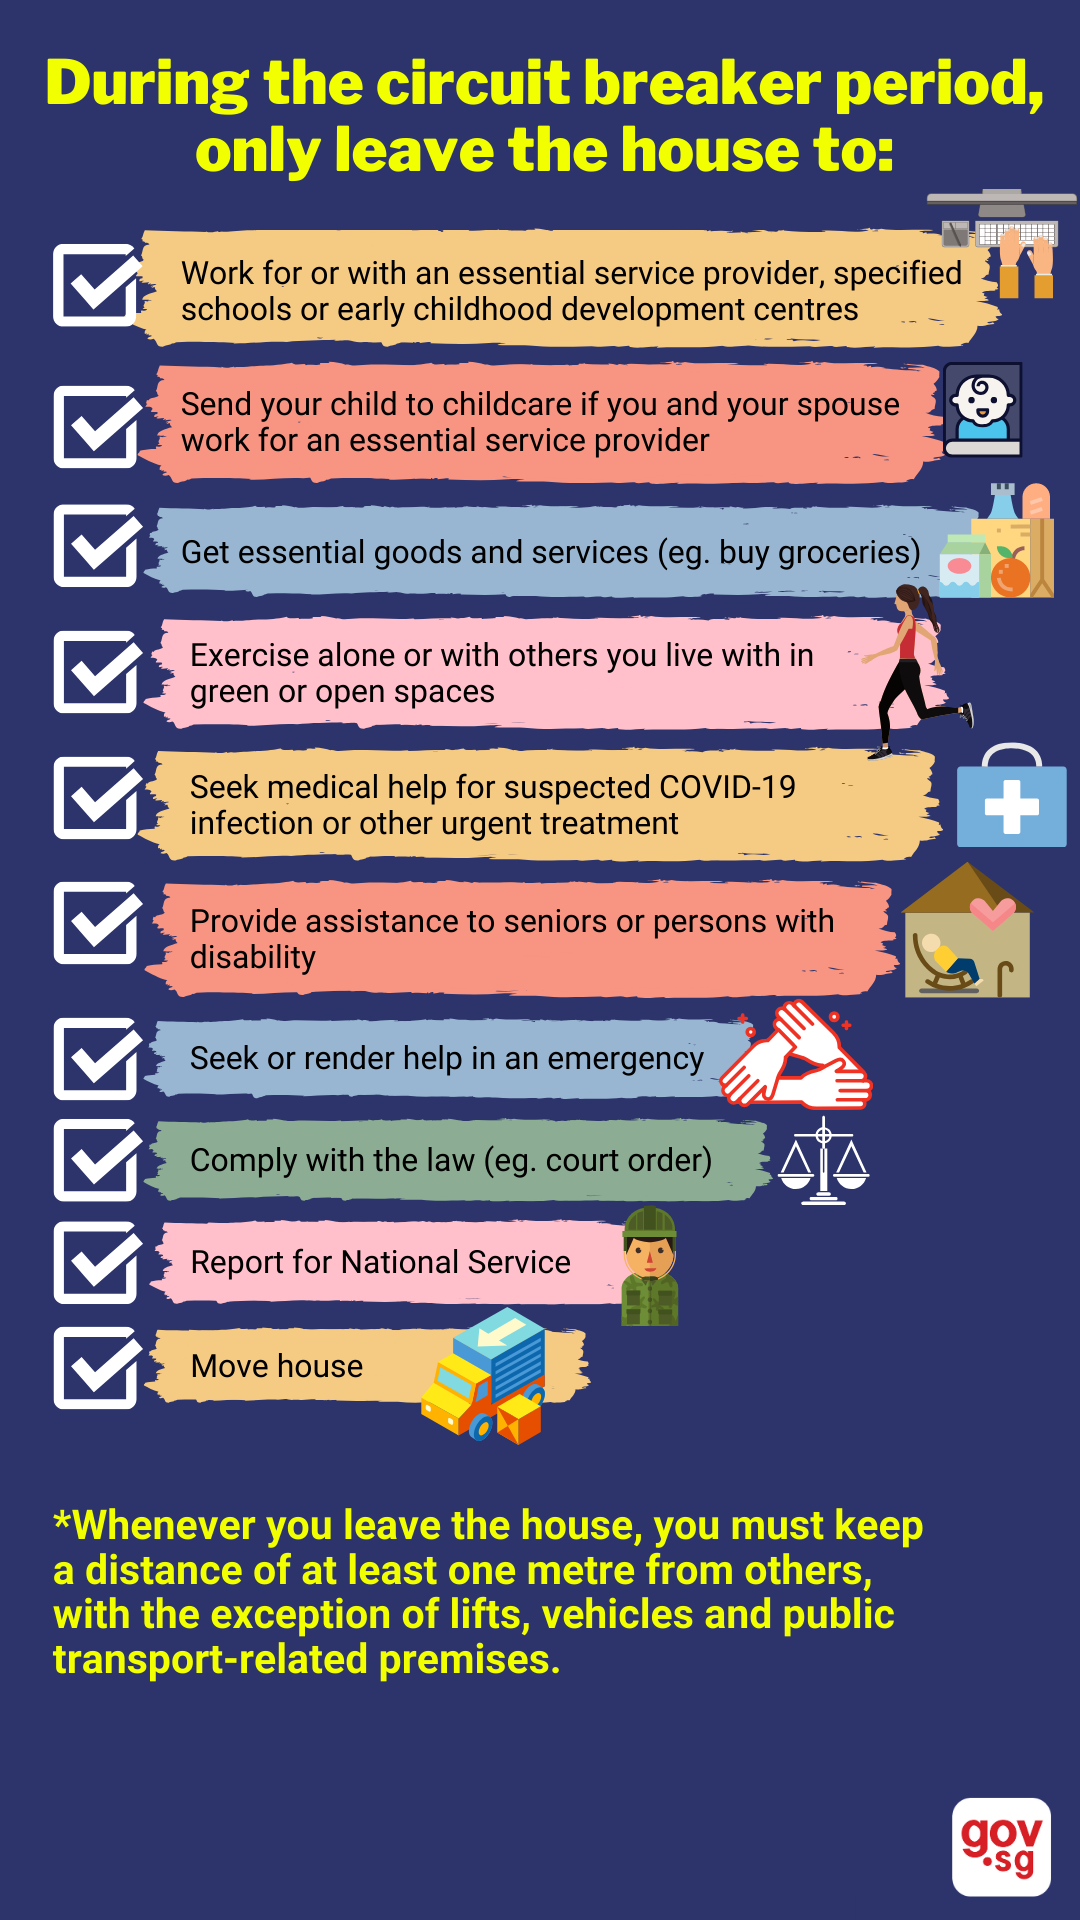 Gov Sg What You Can And Cannot Do During The Circuit Breaker Period